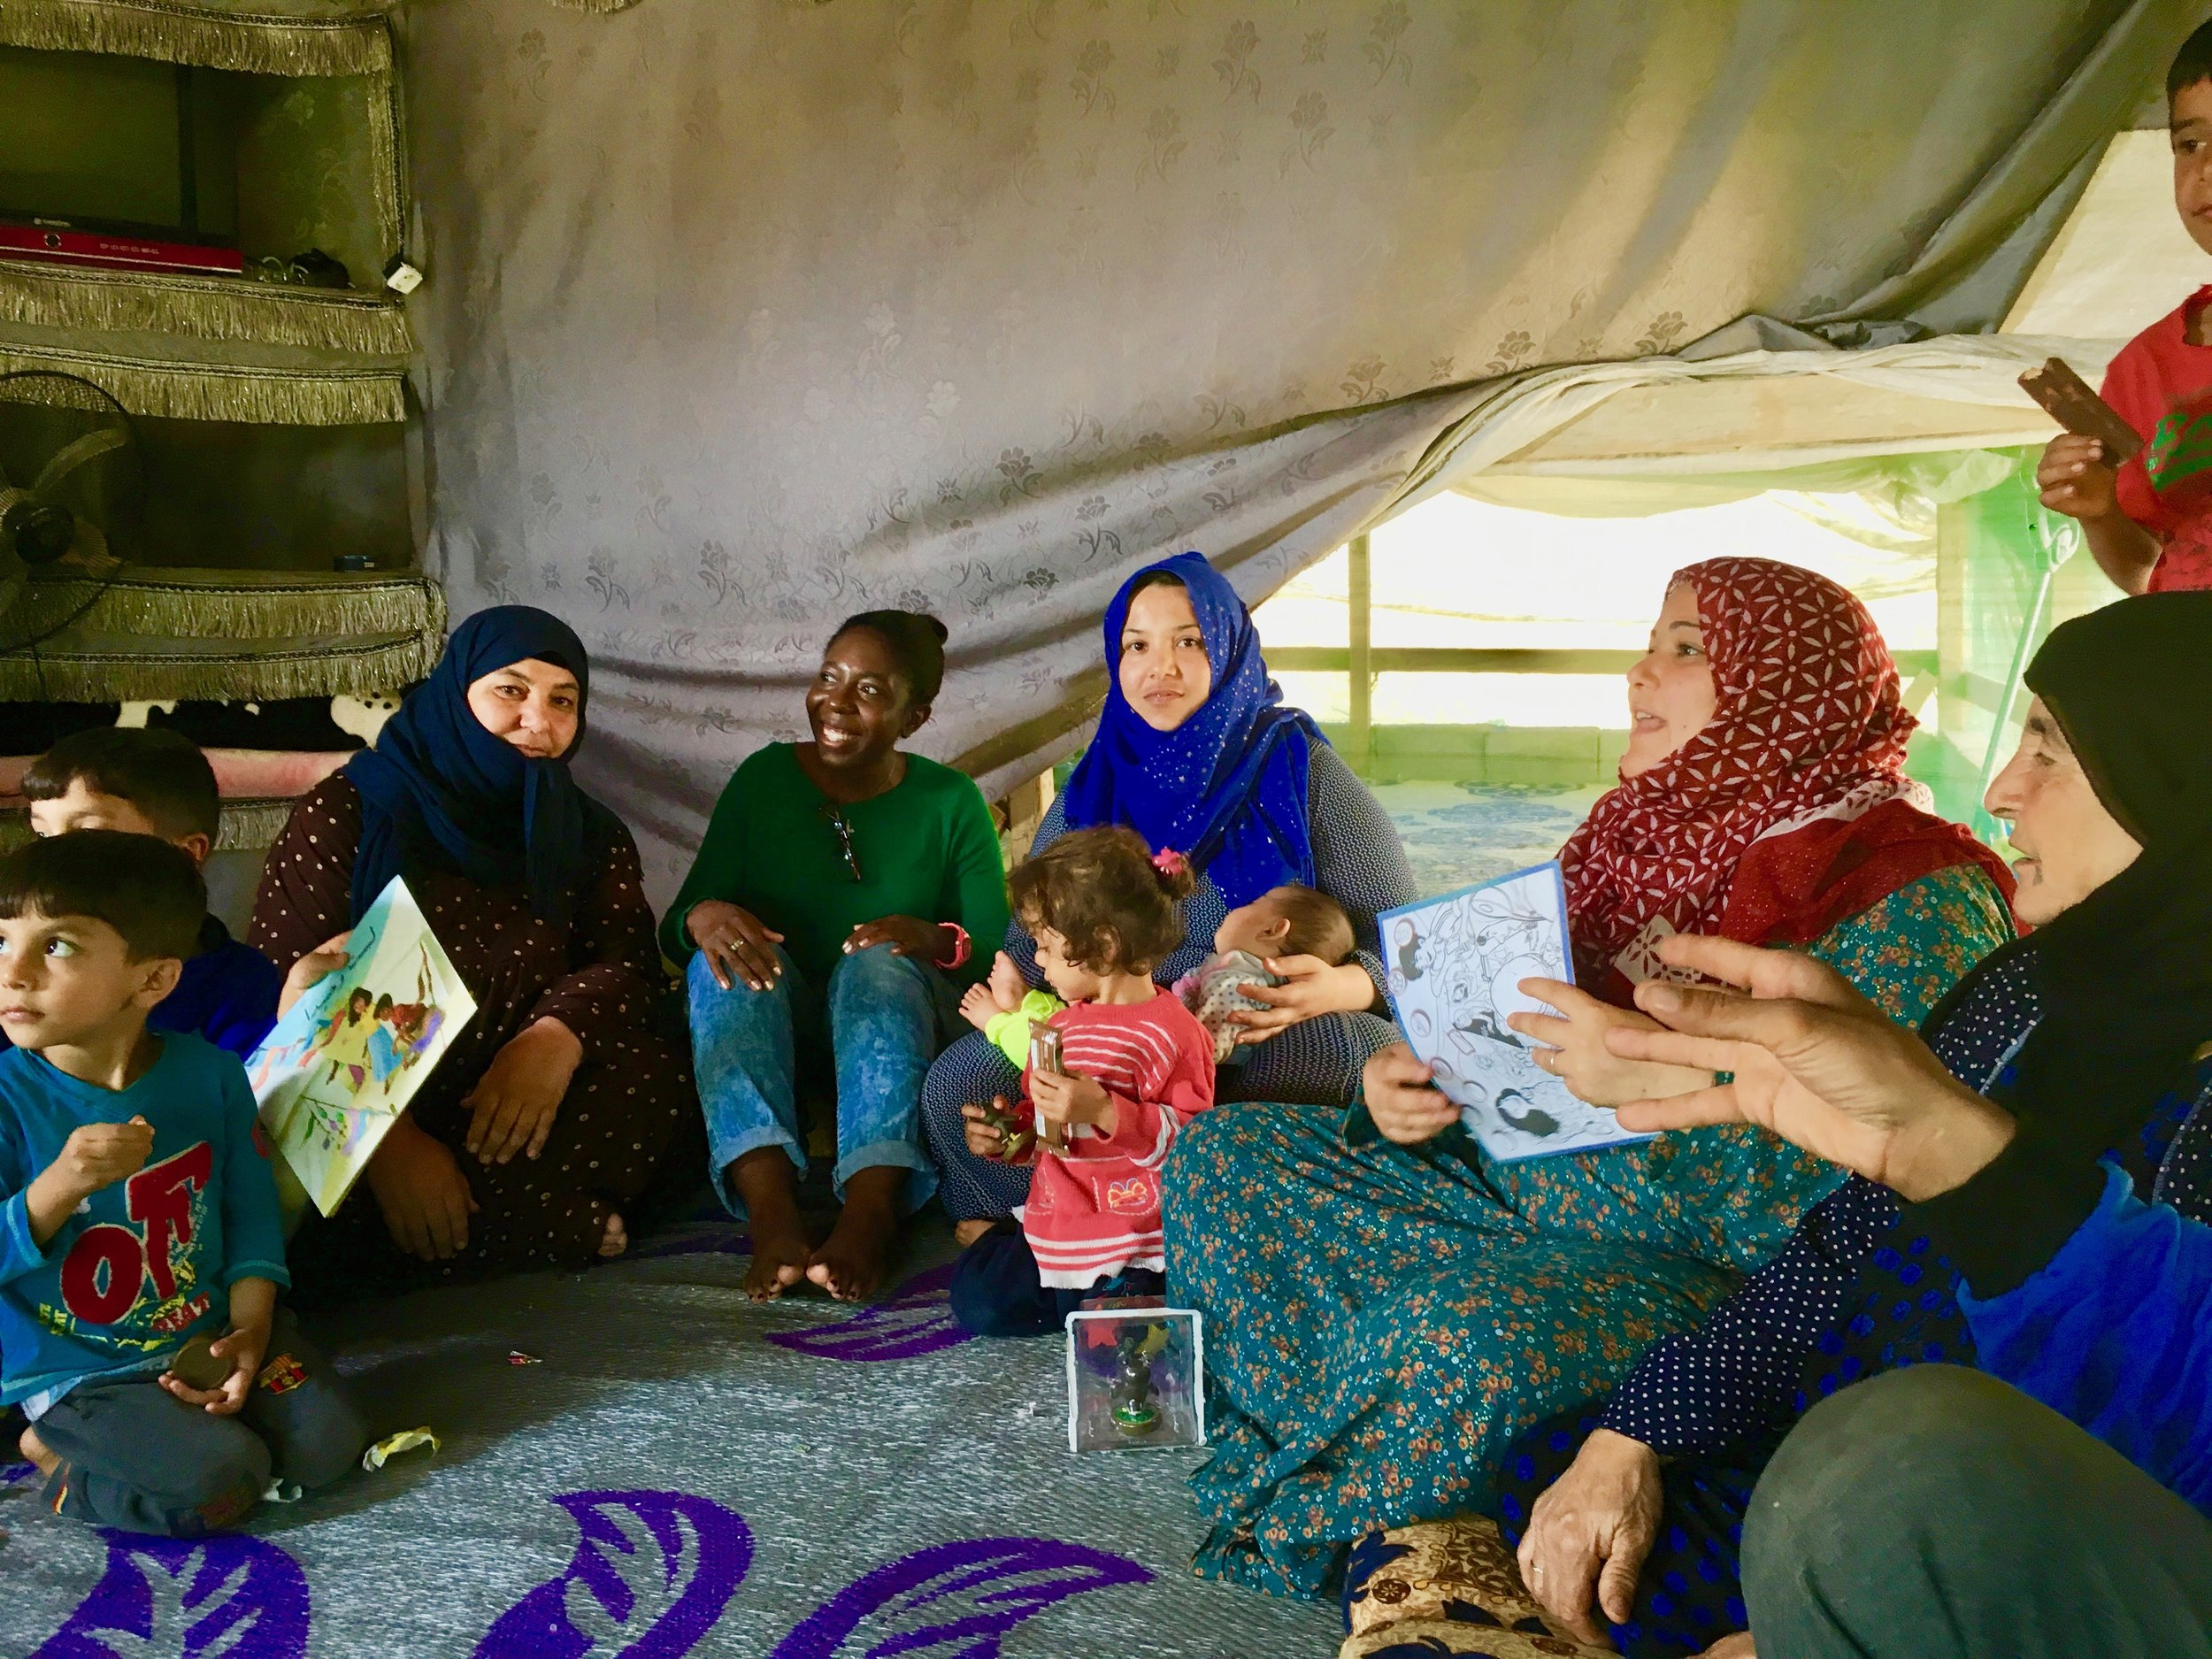 With refugees in the Middle East